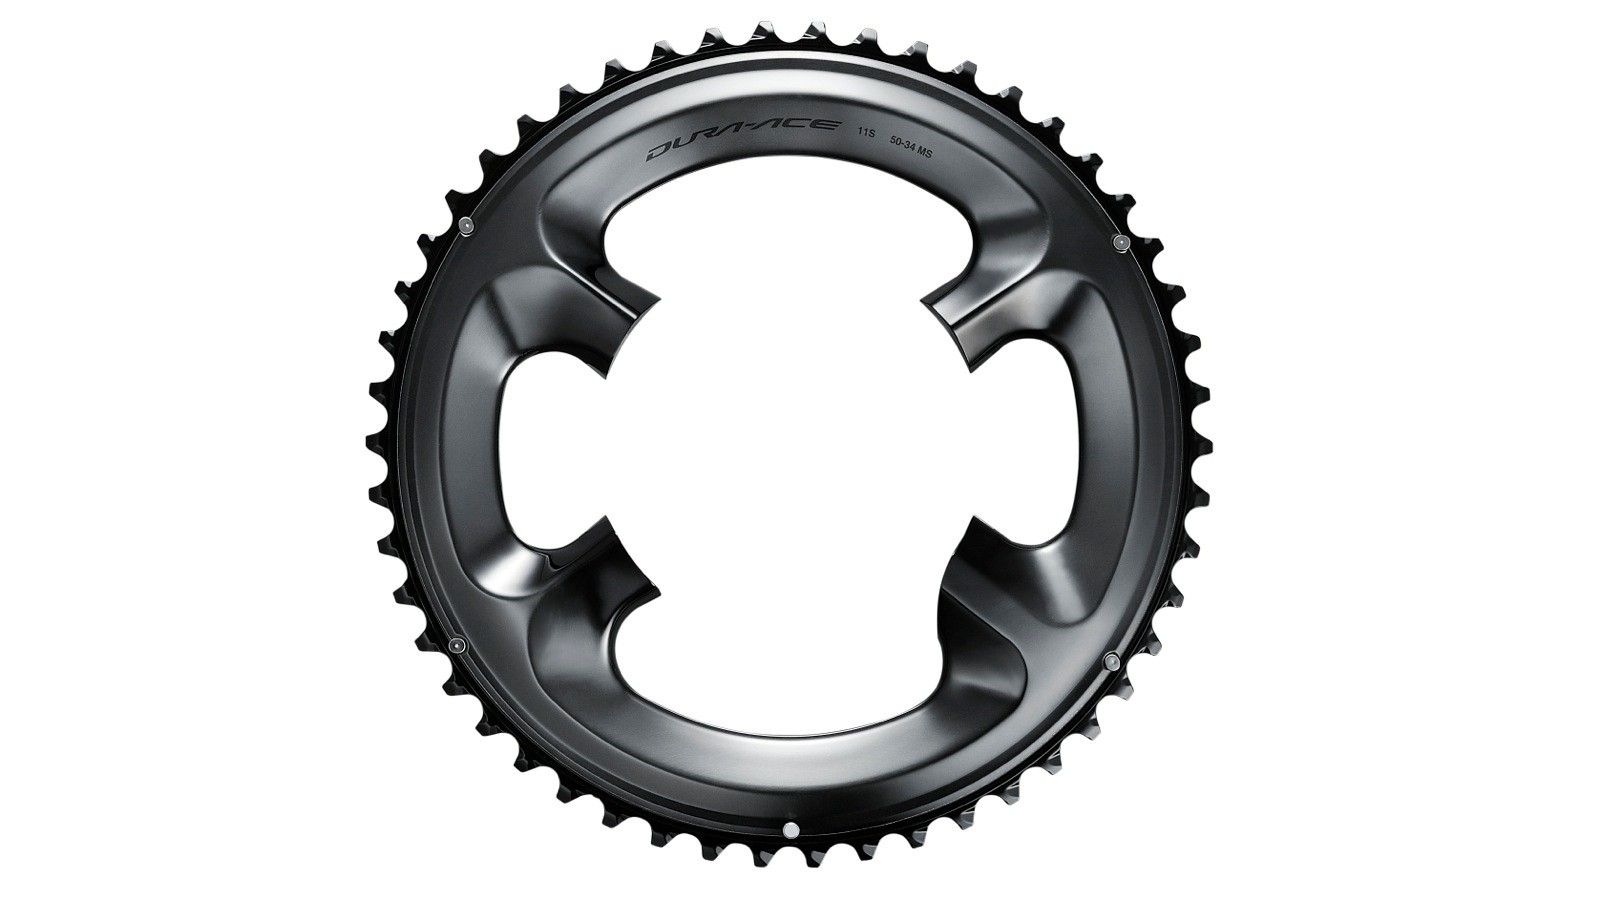 The new Shimano Dura-Ace R9100-P will have its own chainrings. As with 9000 cranks, there is no longer a 130 standard or 110 compact measurement, but a unique Shimano design that works for the full range of chainring sizes